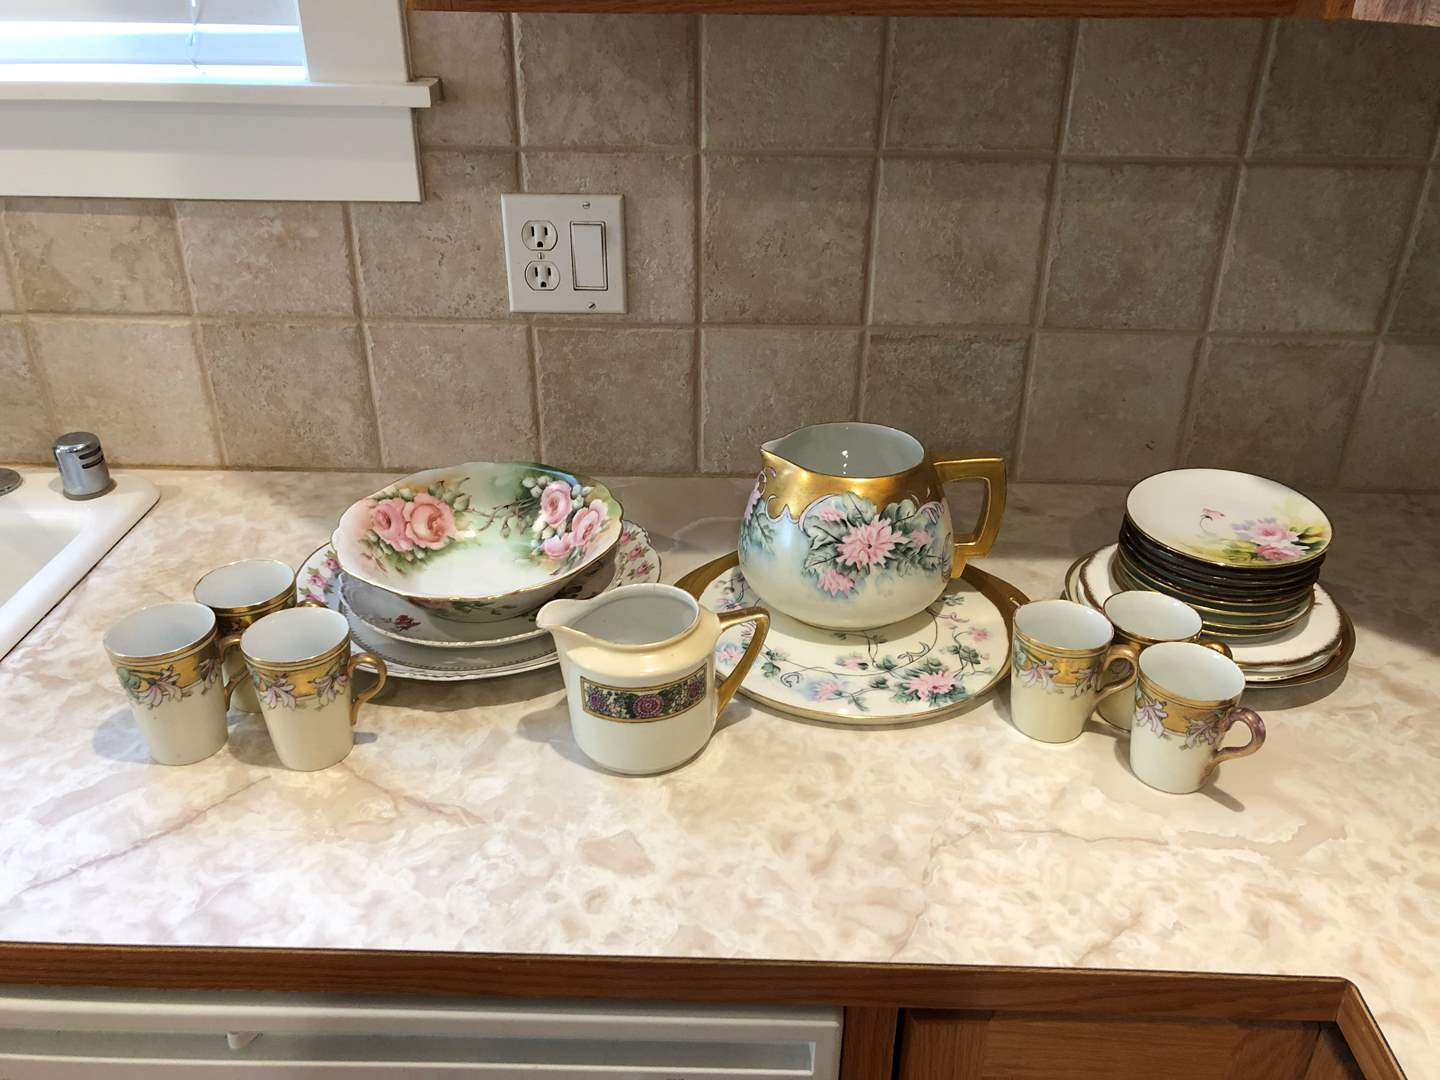 Lot # 61 - Selection of Misc. China: Serving Dishes, Saucers, Snack Plates, Pitchers & Cups - (See Photos for Brand & Patterns) (main image)